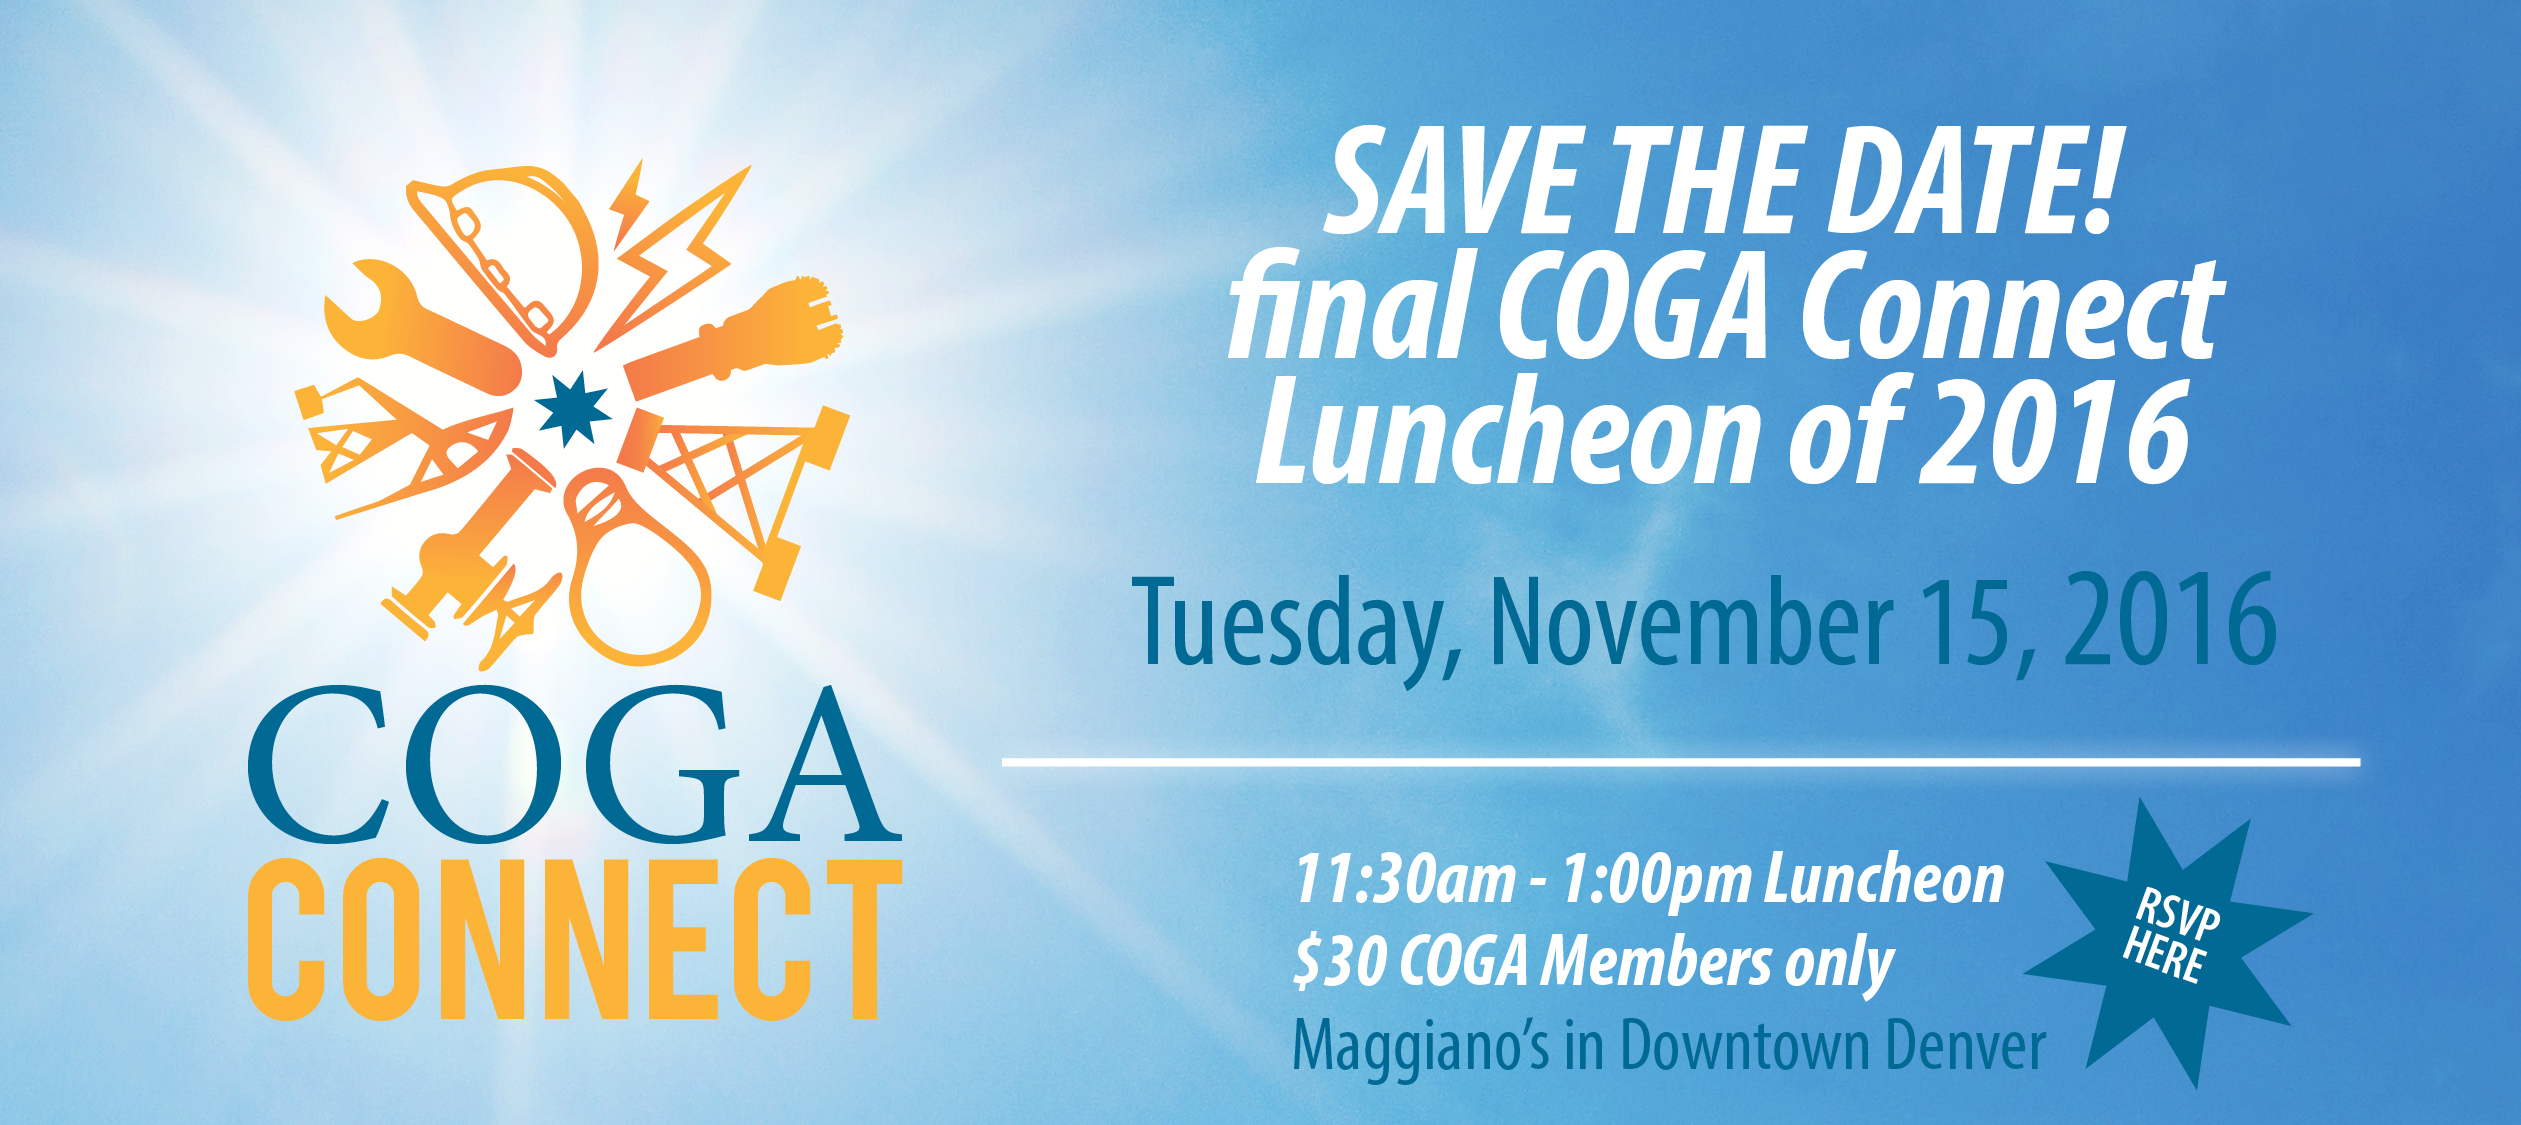 COGA Connect Luncheon - November 15